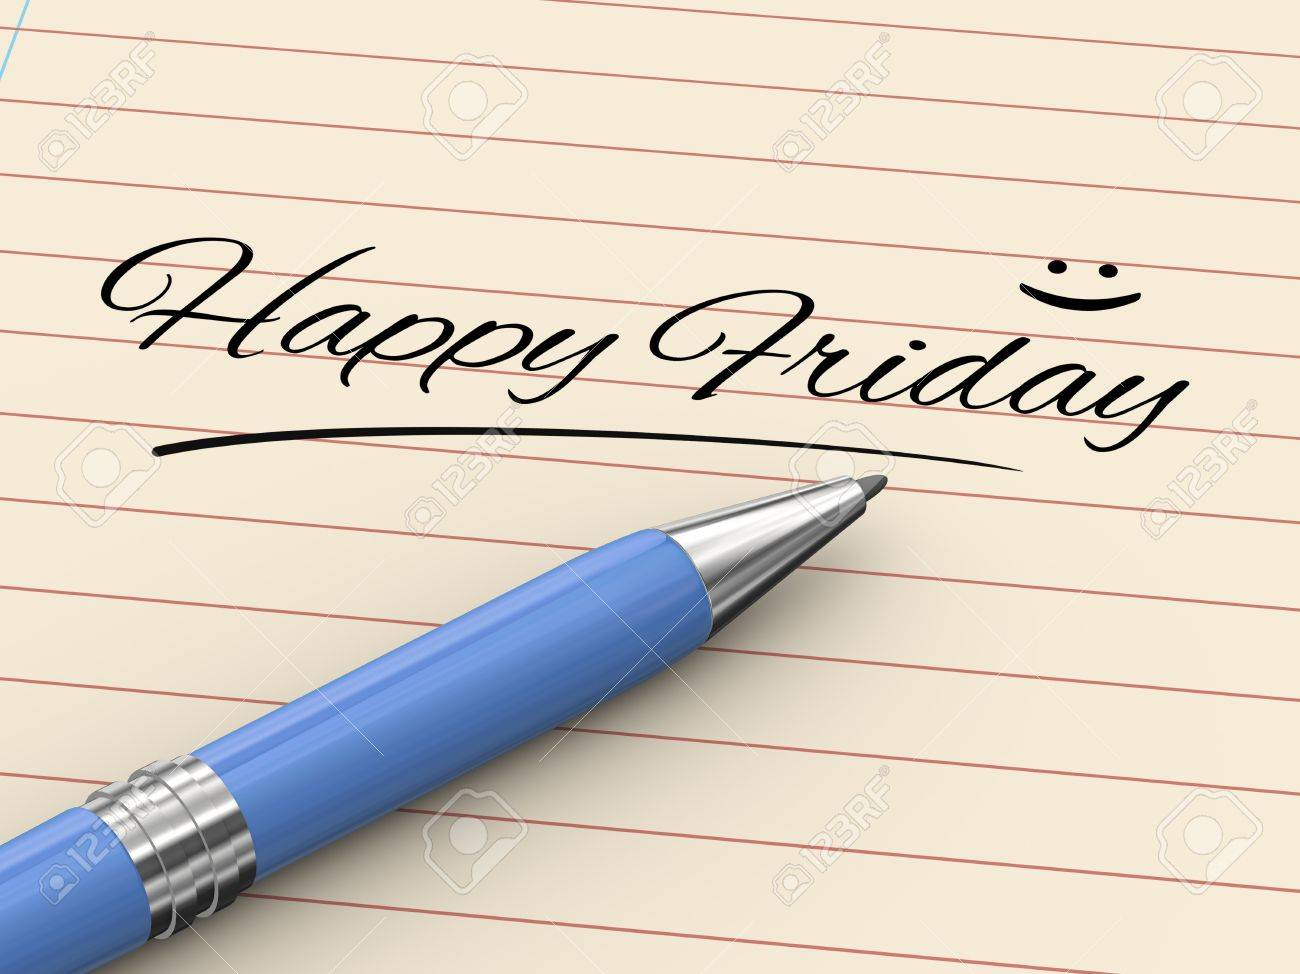 d render of pen on paper written happy friday stock photo 3d render of pen on paper written happy friday stock photo 22011590